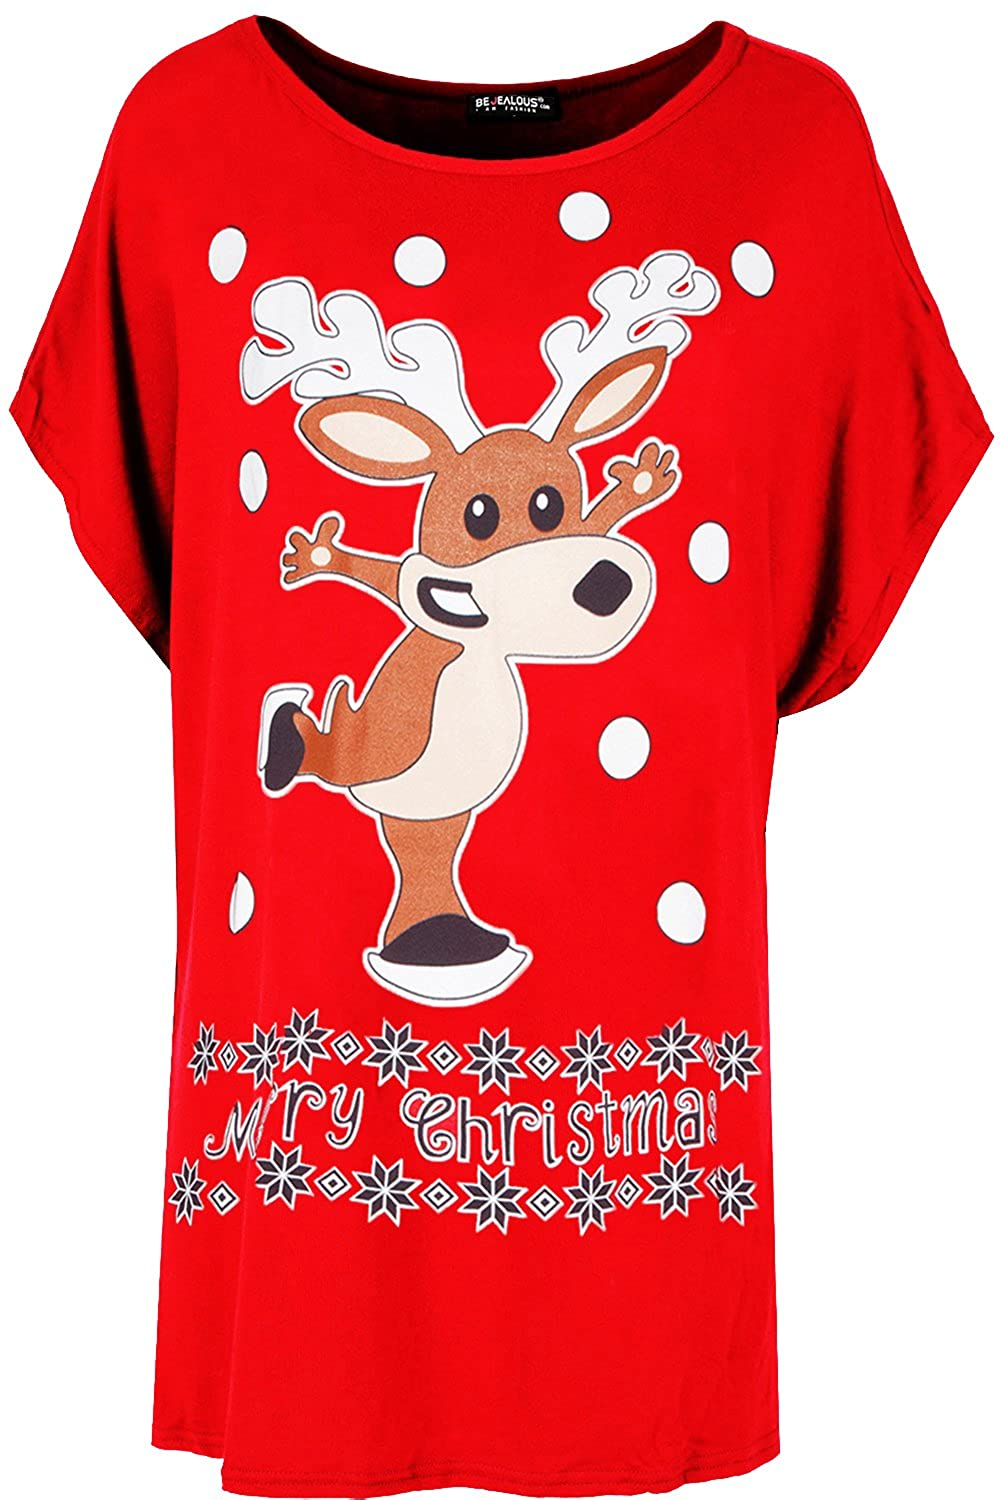 Fashion Star Womens Oversized Batwing Xmas Big Nose Reindeer Christmas Baggy T Shirt BE JEALOUS